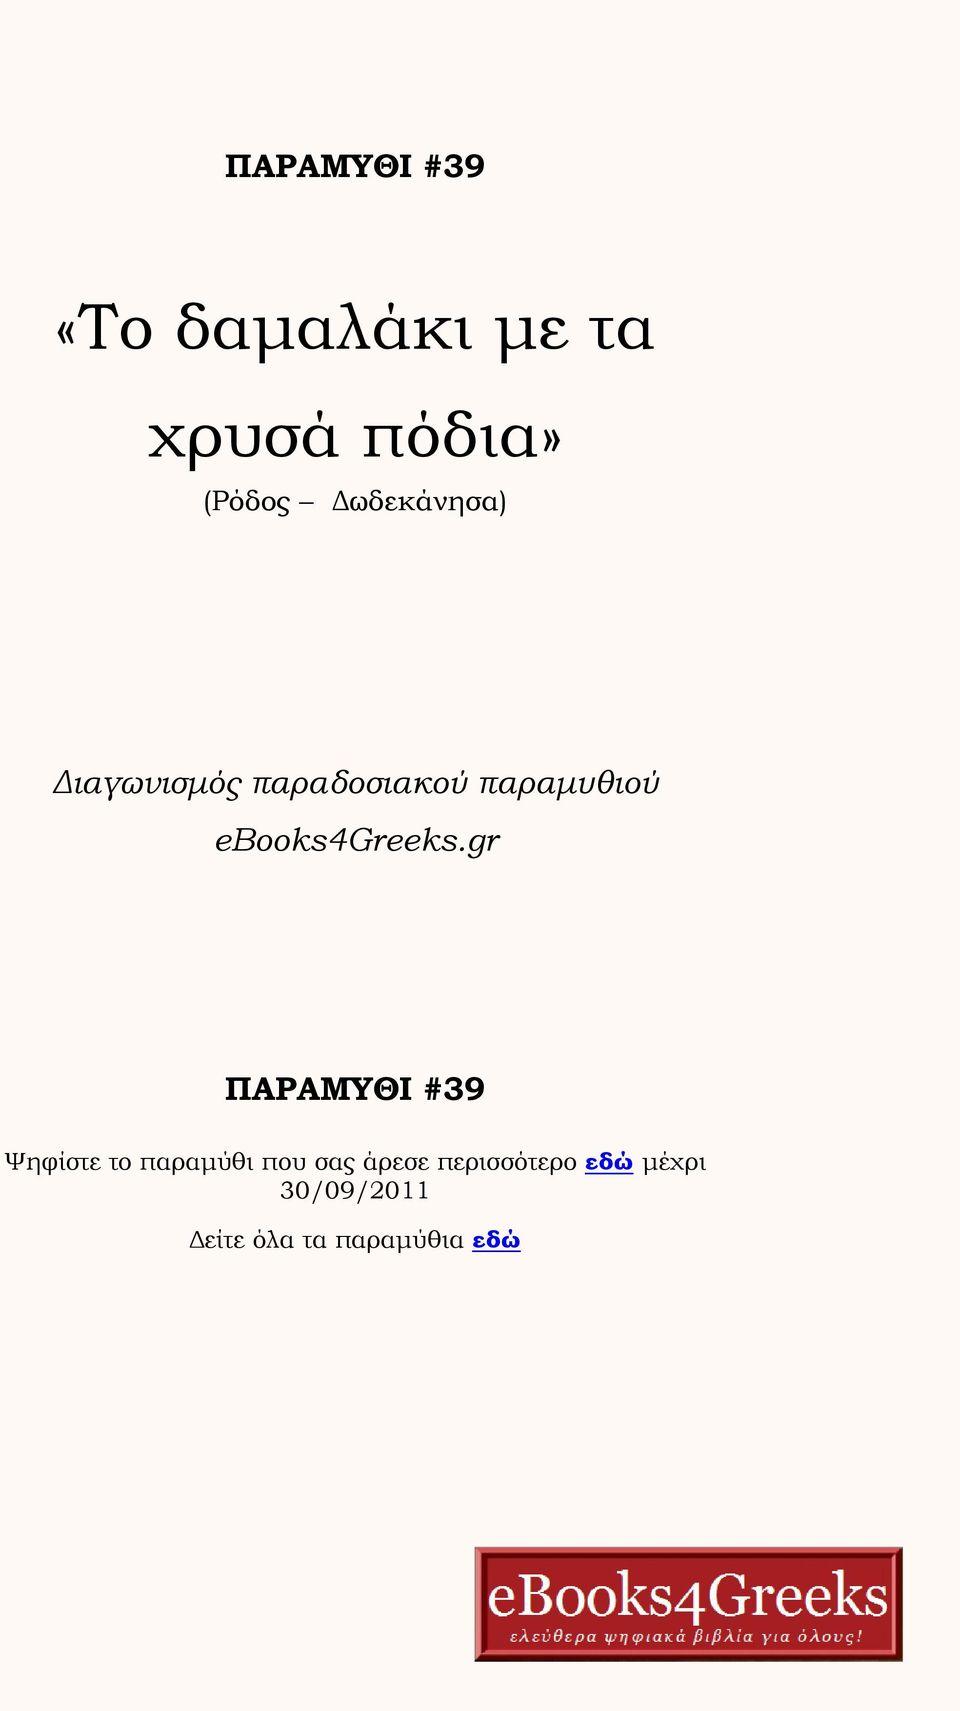 ebooks4greeks.